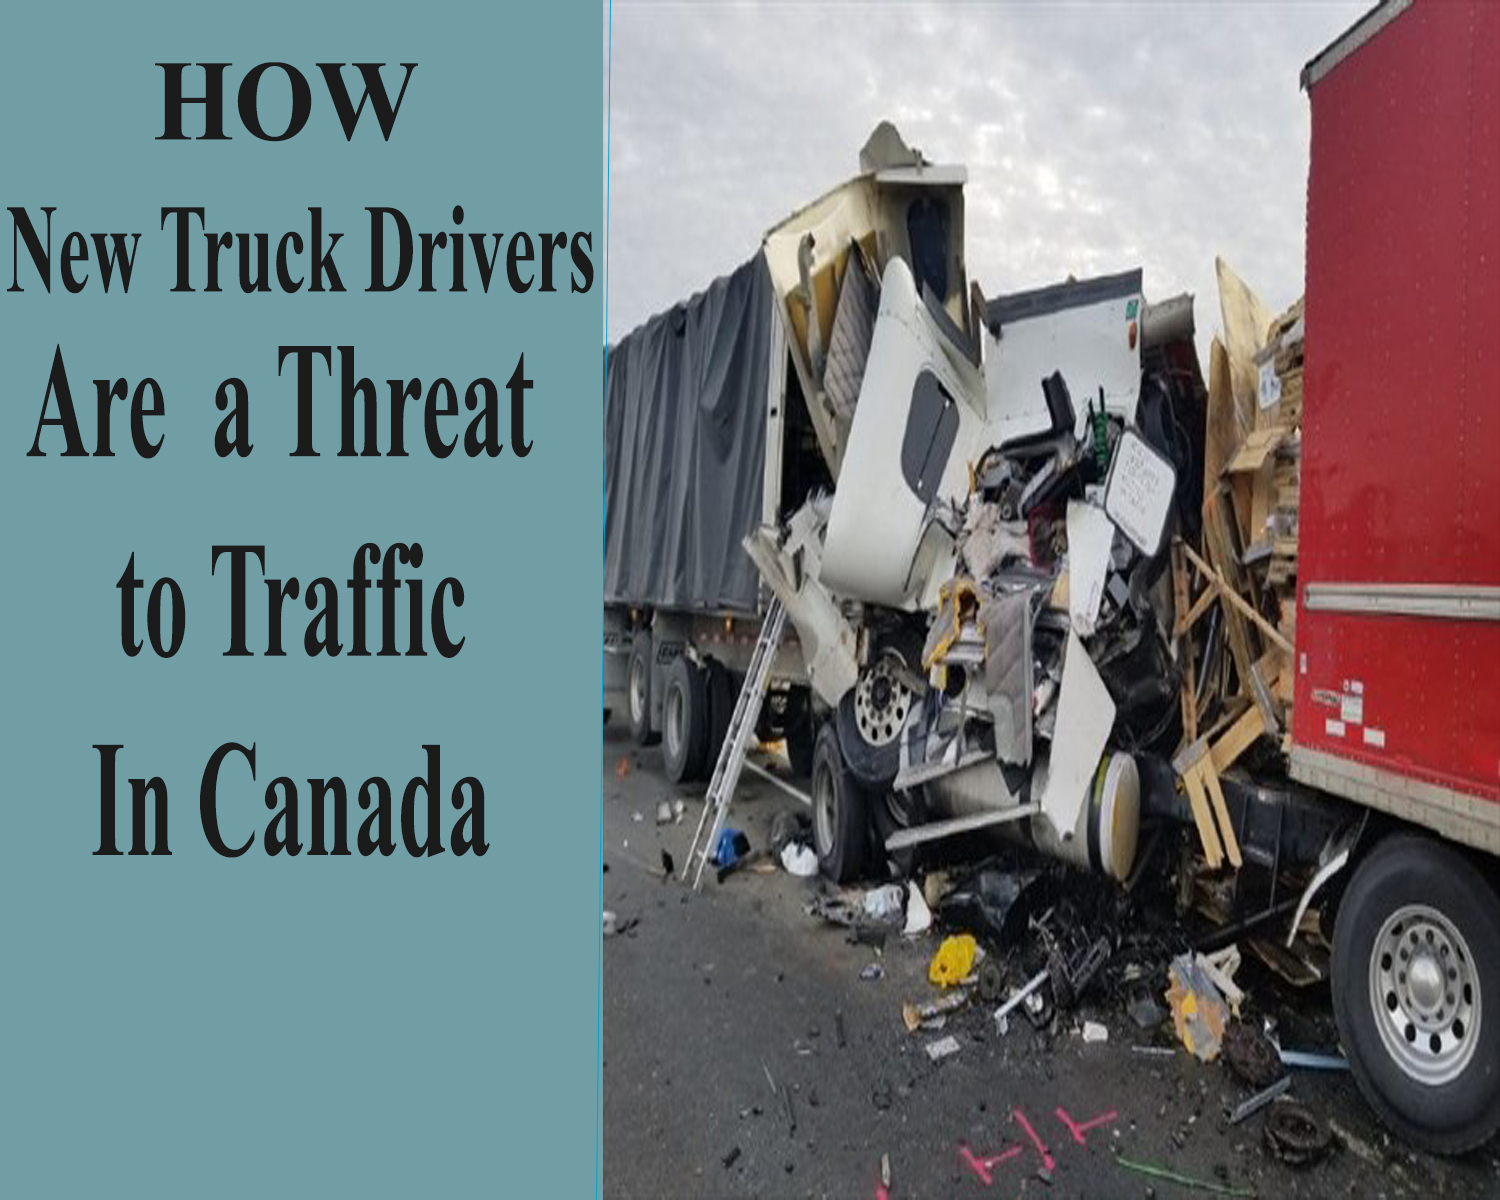 How New Truck Drivers from Asia Pose threat to traffic after immigrating to Canada